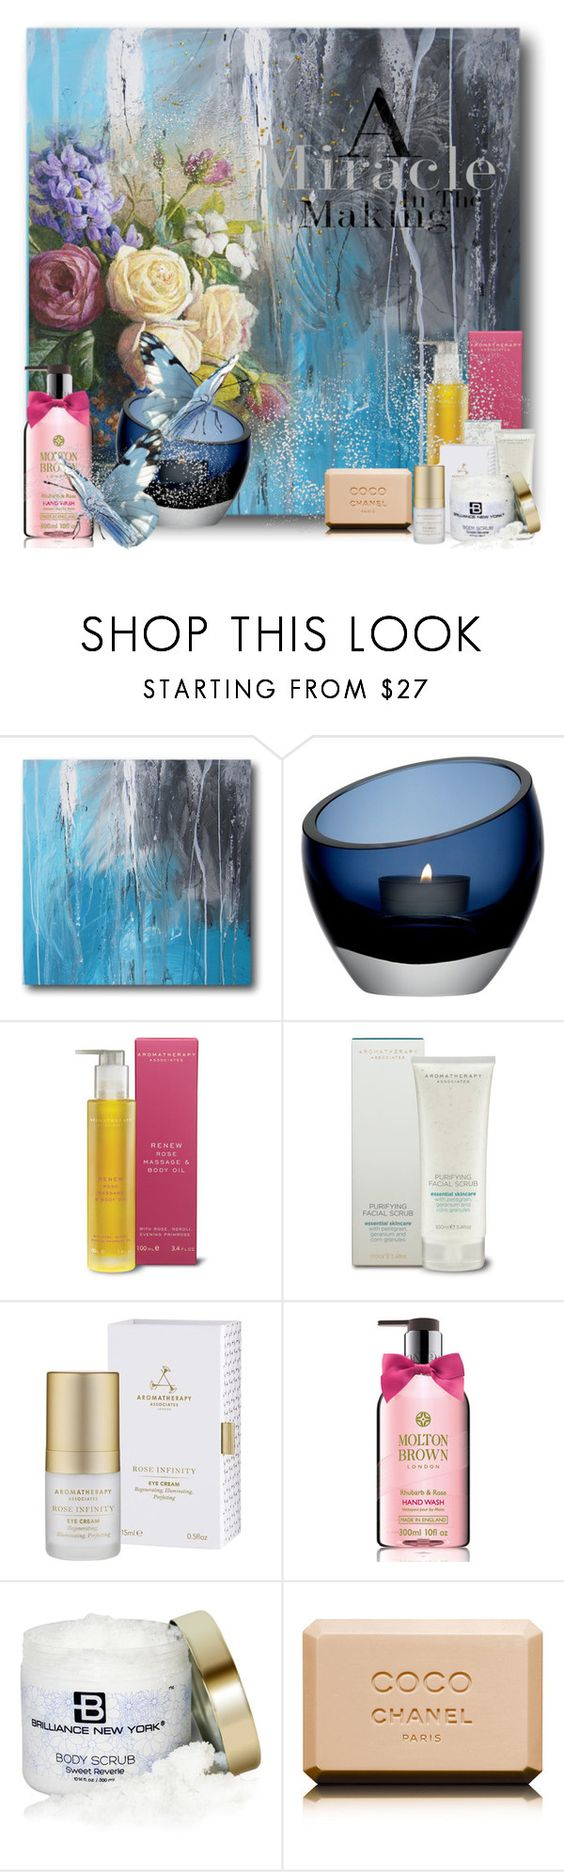 """Skin Care!!"" by eco-art ❤ liked on Polyvore featuring beauty, LSA International, Aromatherapy Associates, Molton Brown, Brilliance New York and Chanel"